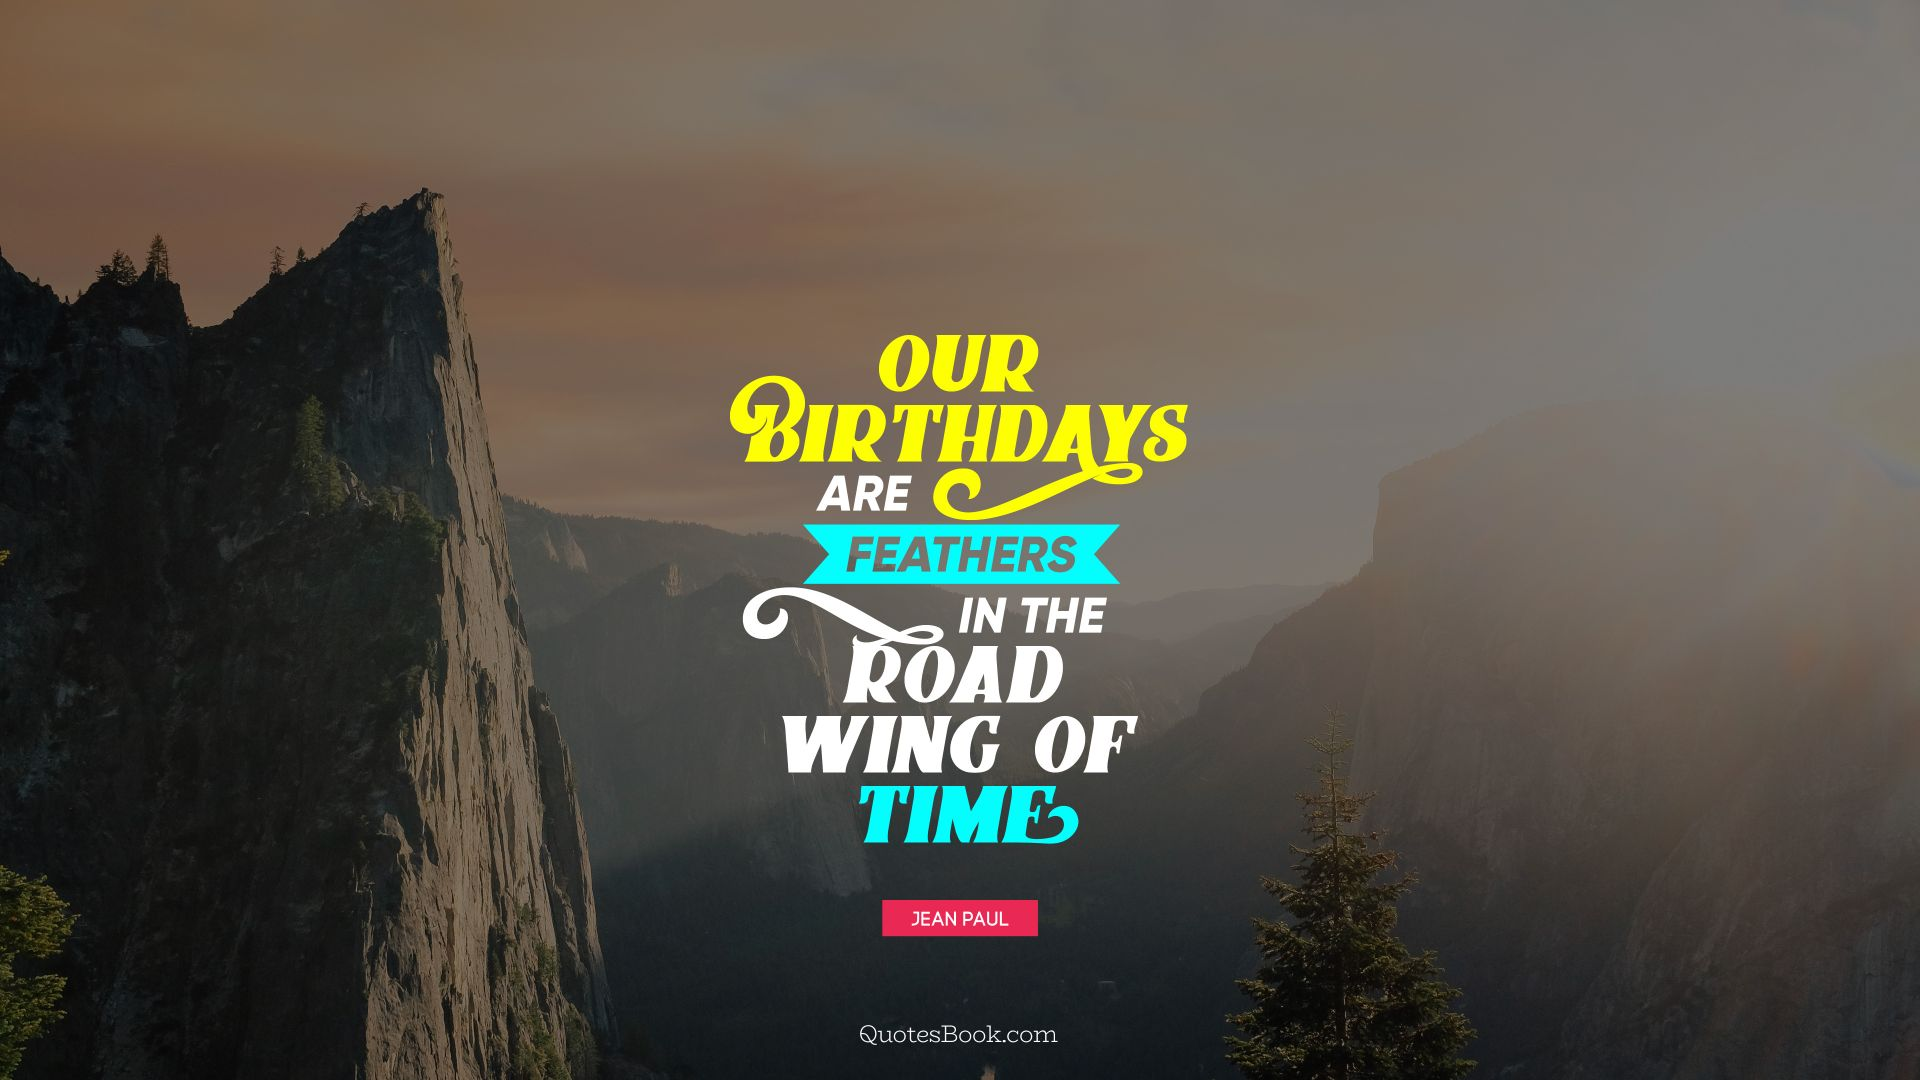 Our birthdays are feathers in the broad wing of time. - Quote by Jean Paul